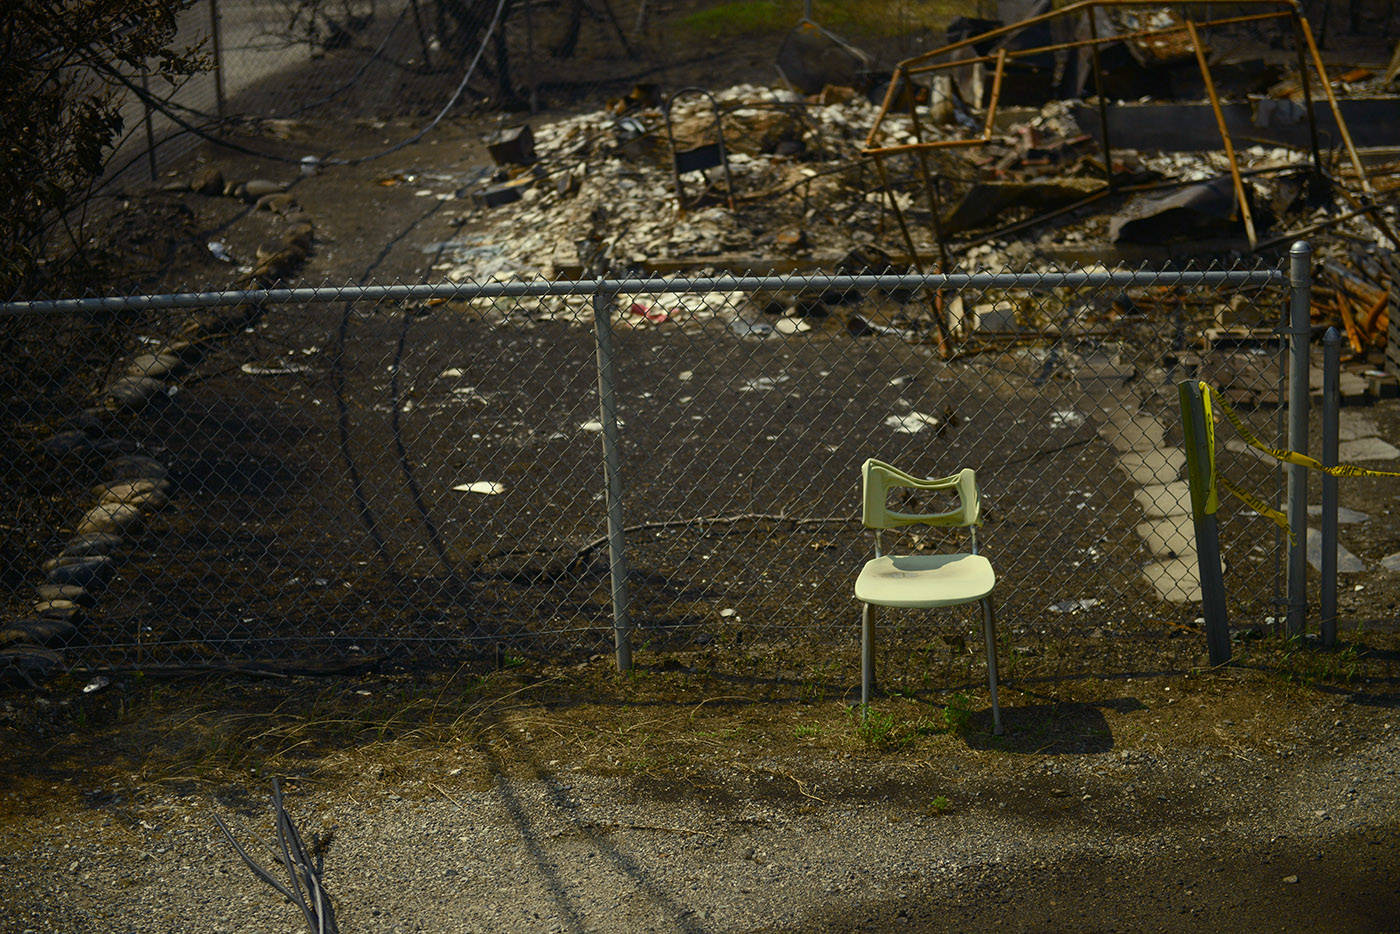 A partially melted chair stands amid the burnt rubble on Main Street in the Village of Lytton, B.C. on Friday, July 9, 2021 following a massive wildfire that tore through the town destroying 90 per cent of it. (Jenna Hauck/ Black Press Media)